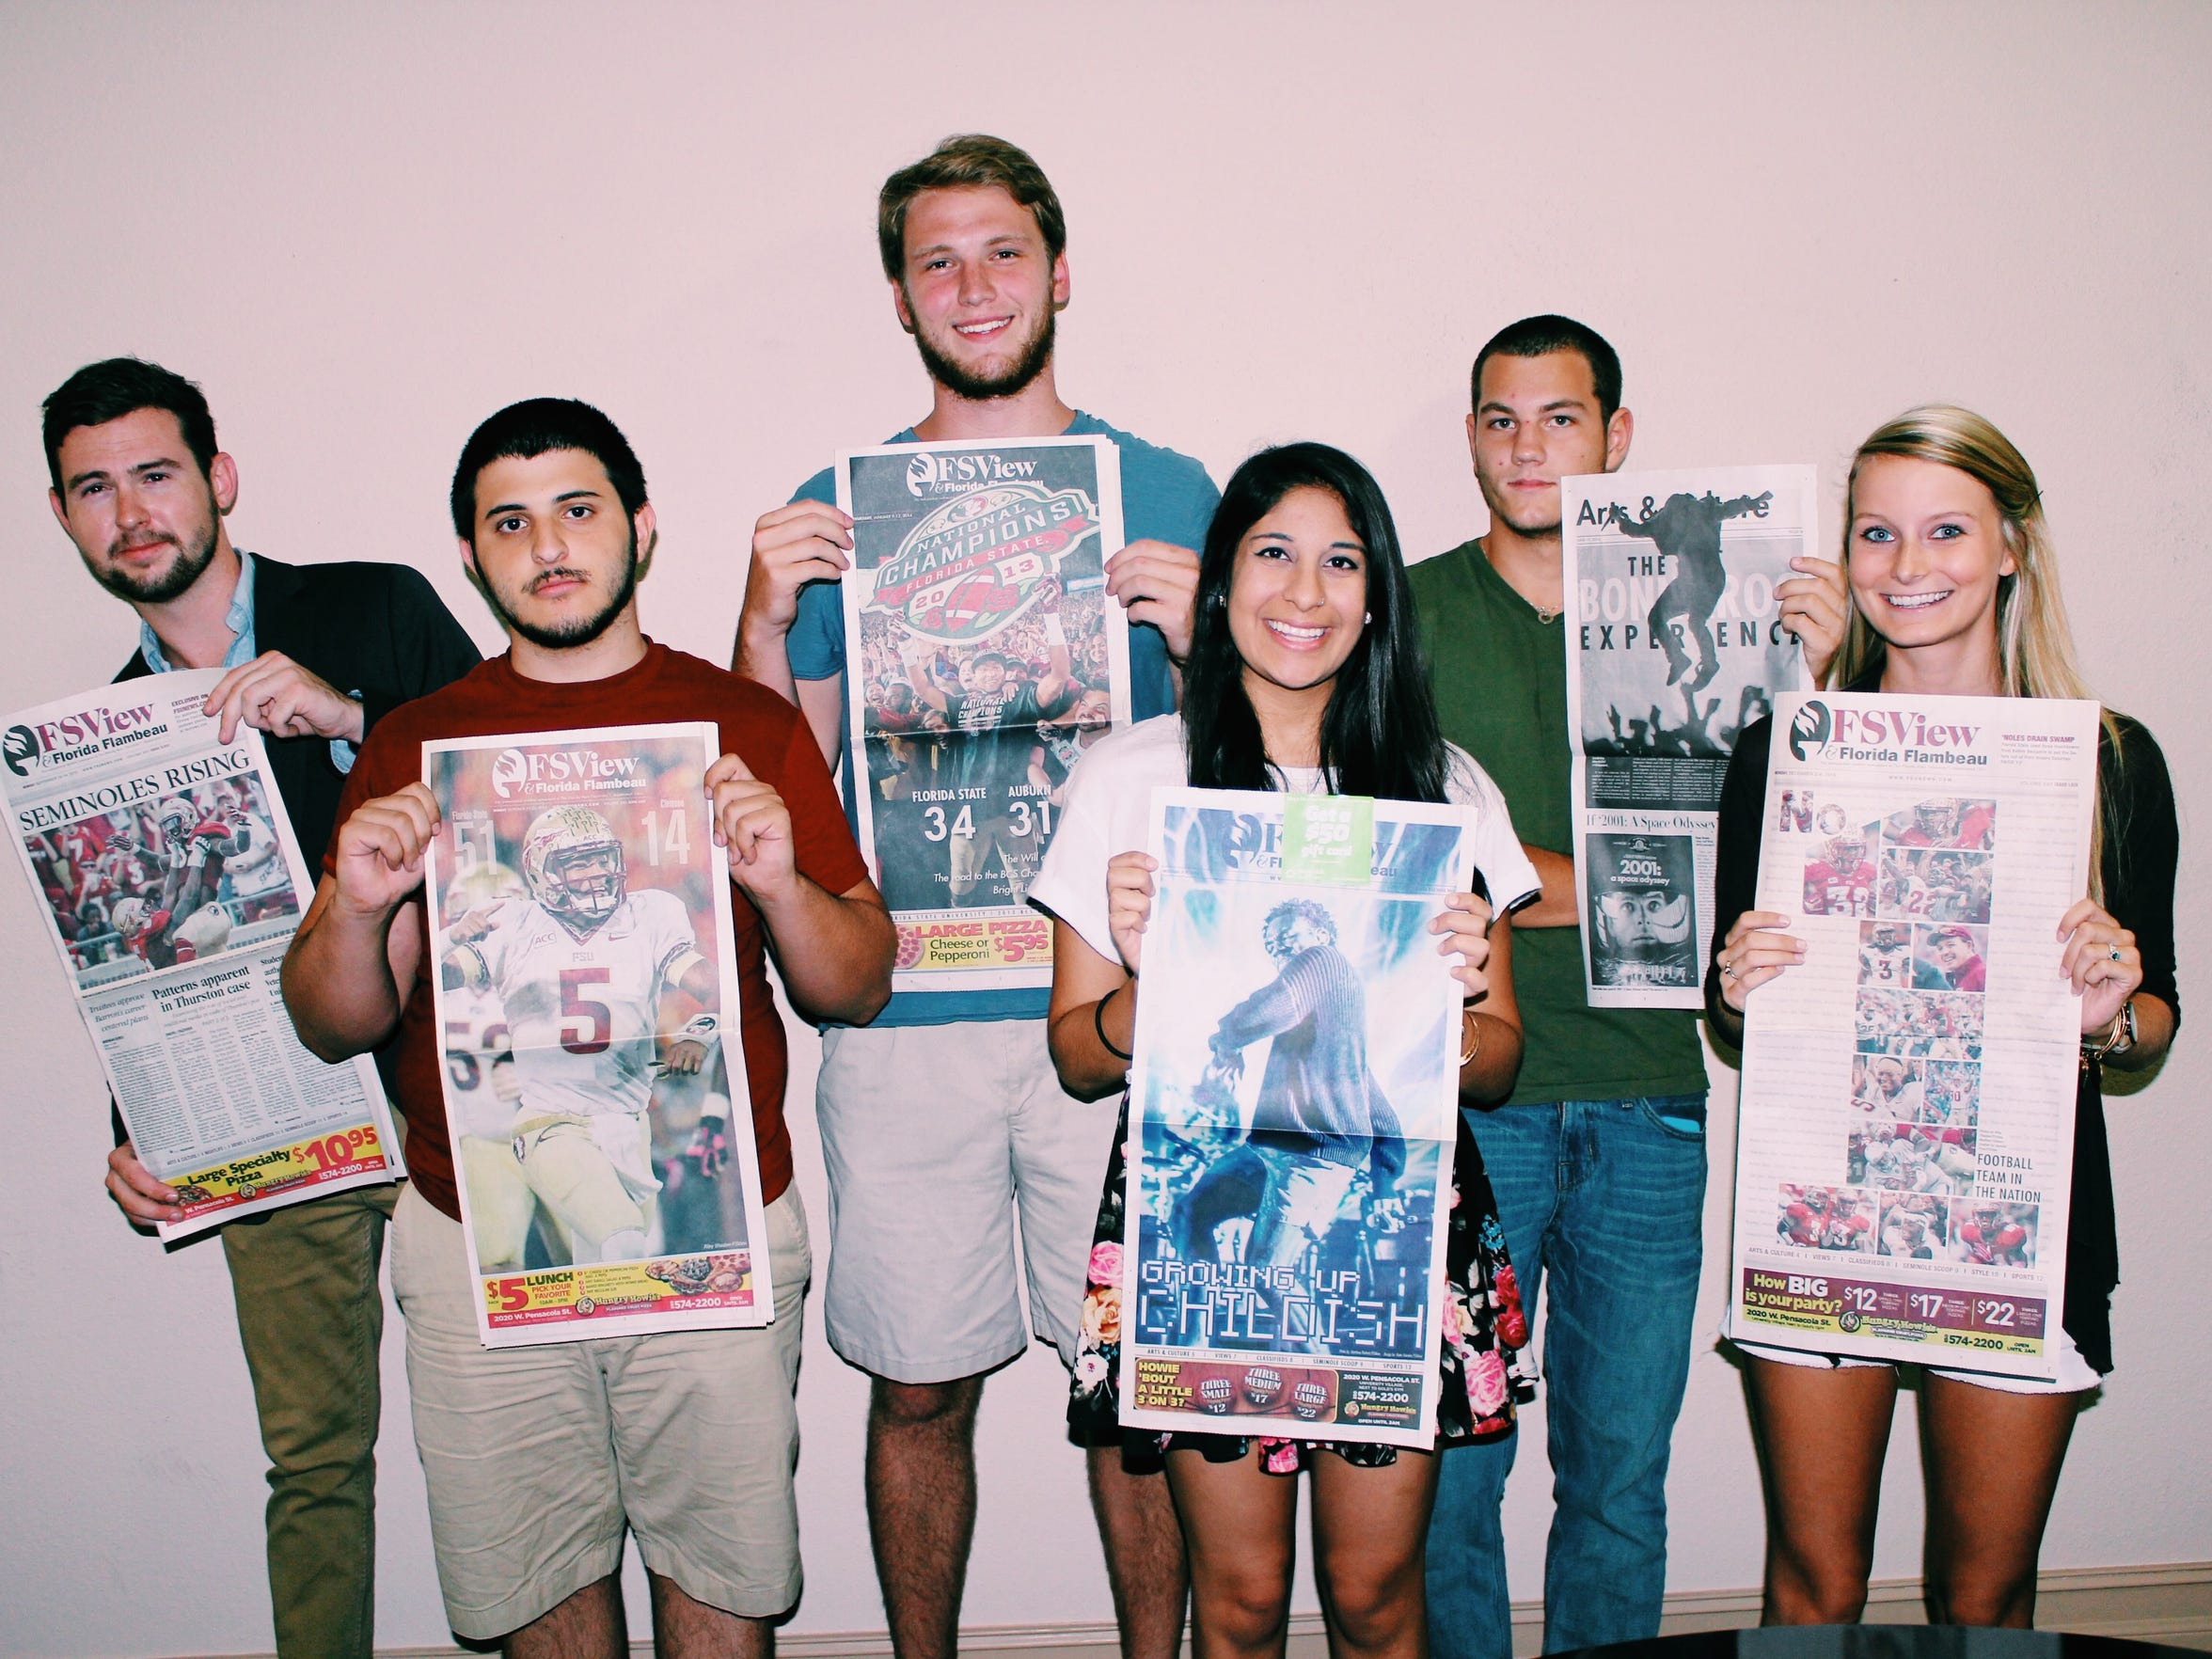 The FSView staff poses with some of our favorite covers.